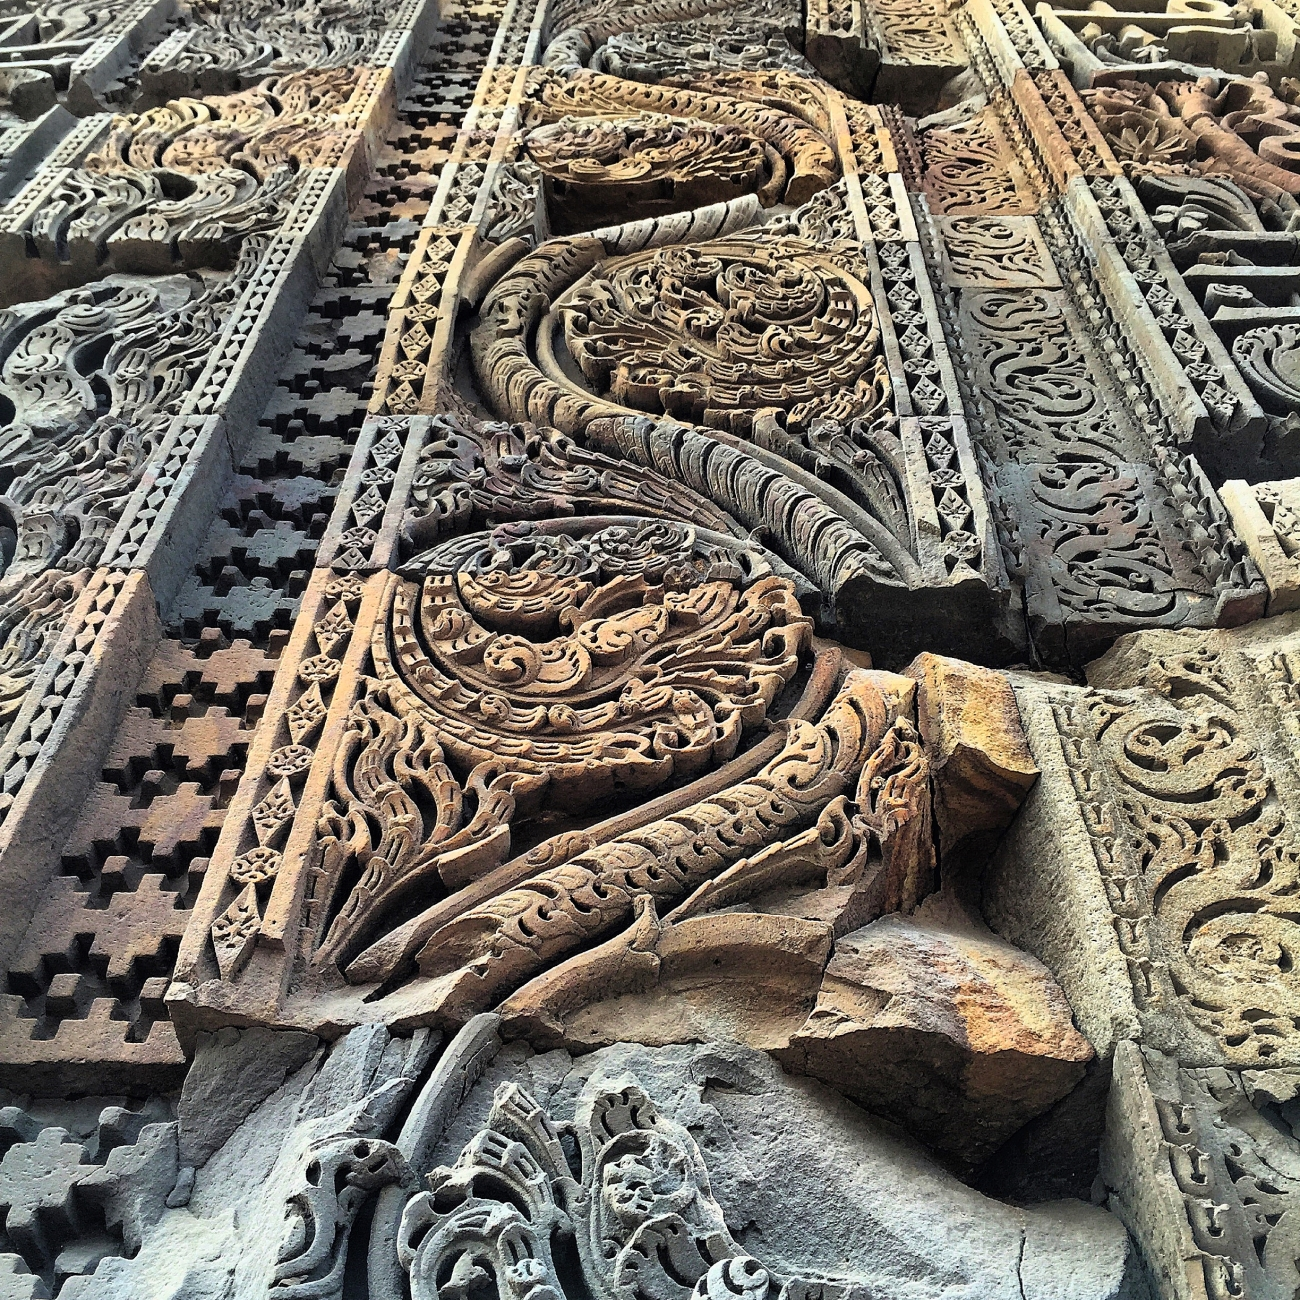 Intricate work on the walls - The Qutub Minar Complex